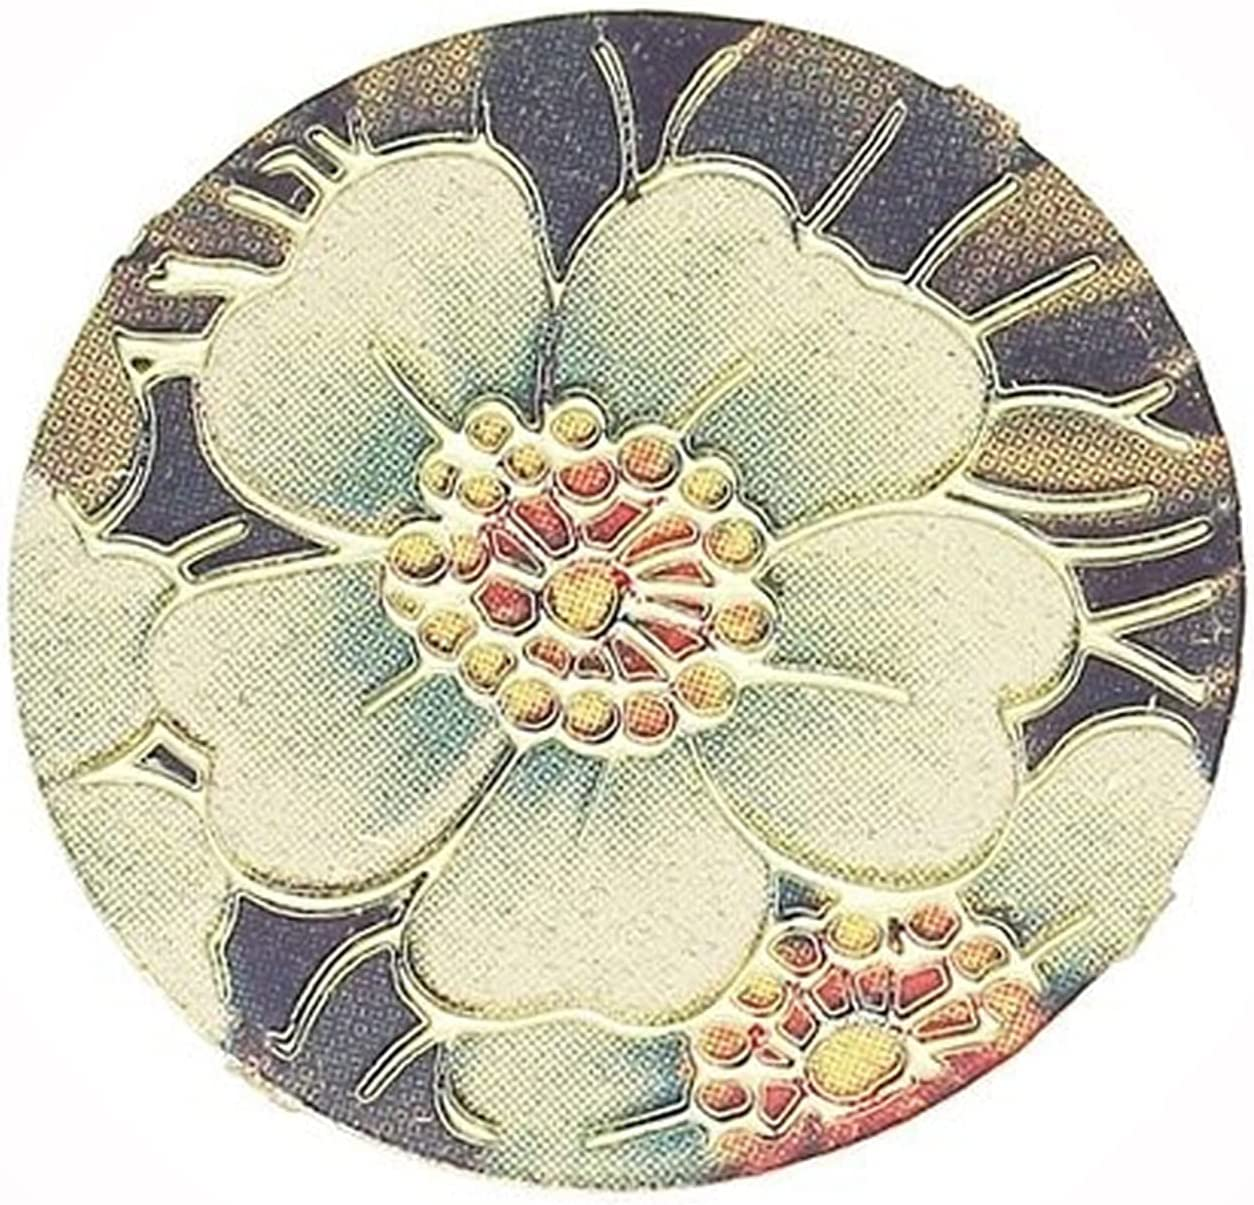 New White Max 41% OFF Flower Gold Plated Max 69% OFF 20mm for Charm Floating Plate Disc